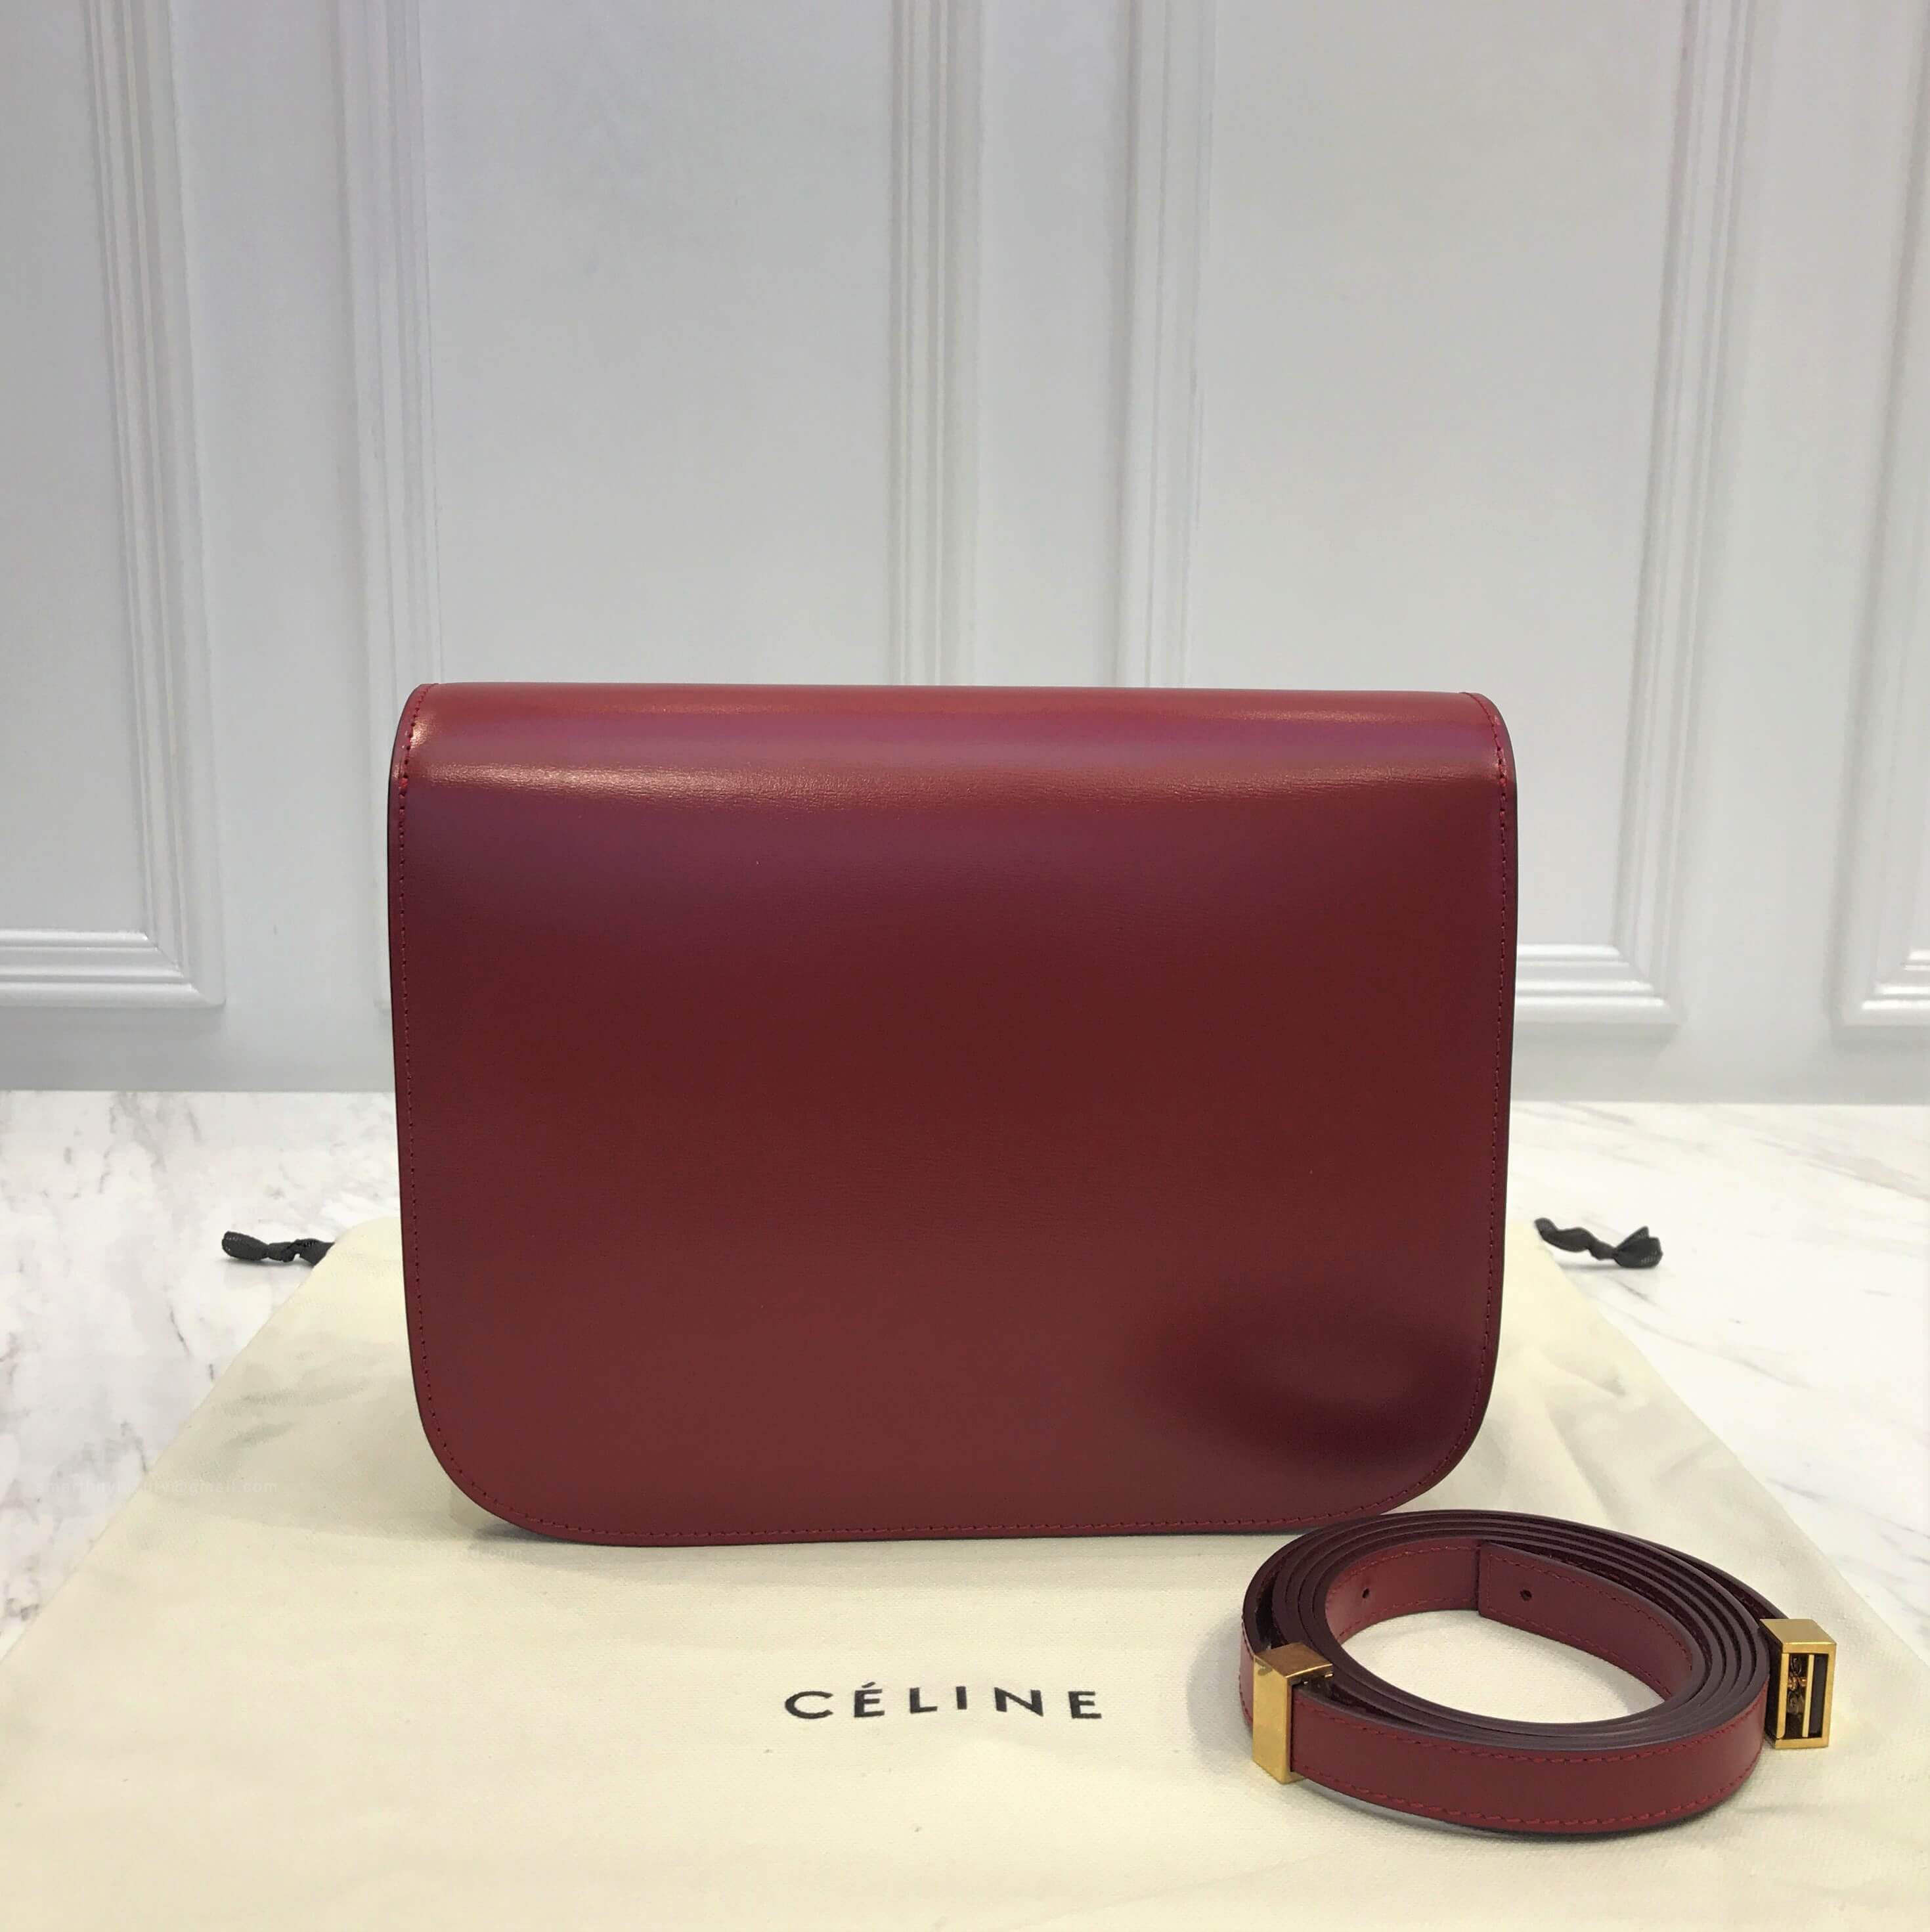 bdc675f0d420 ... Celine Classic Box Bag Medium in Dark Red Liege Calfskin - online store  69bb4 c3f07 ...